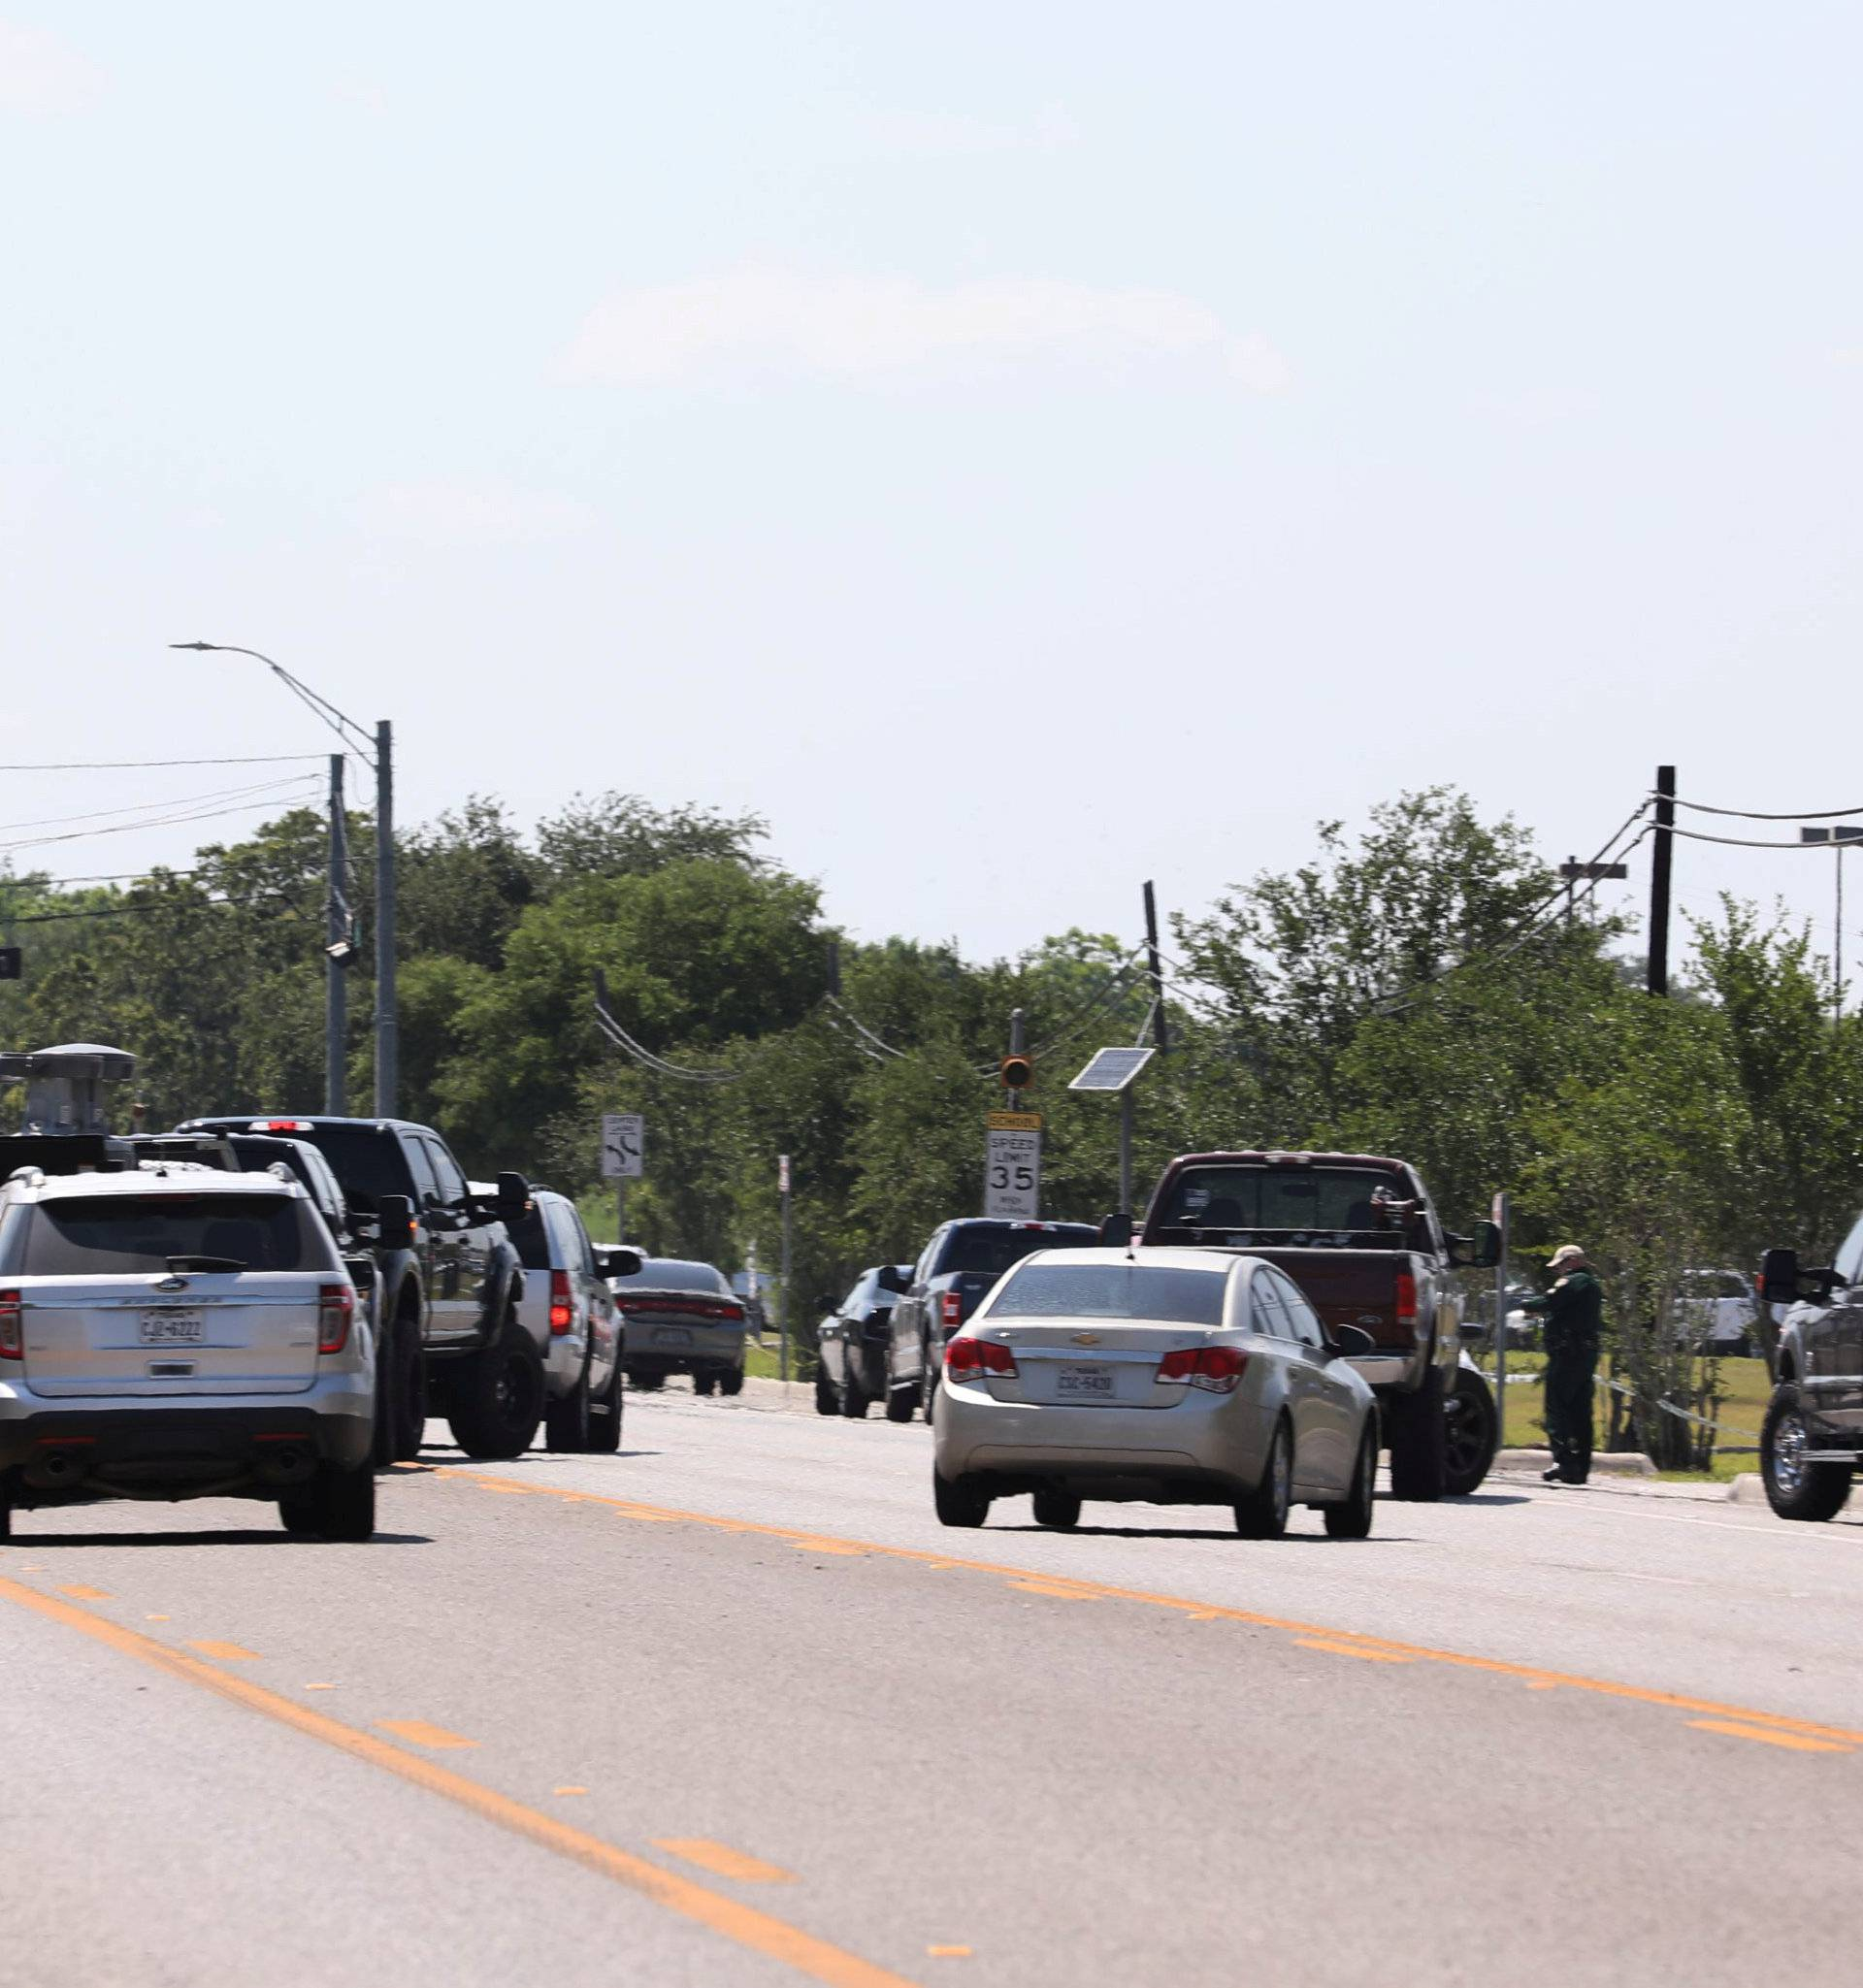 Police keep a roadblock in front of the Santa Fe High School after police found explosives at the school where shooting left several people dead in Santa Fe Texas